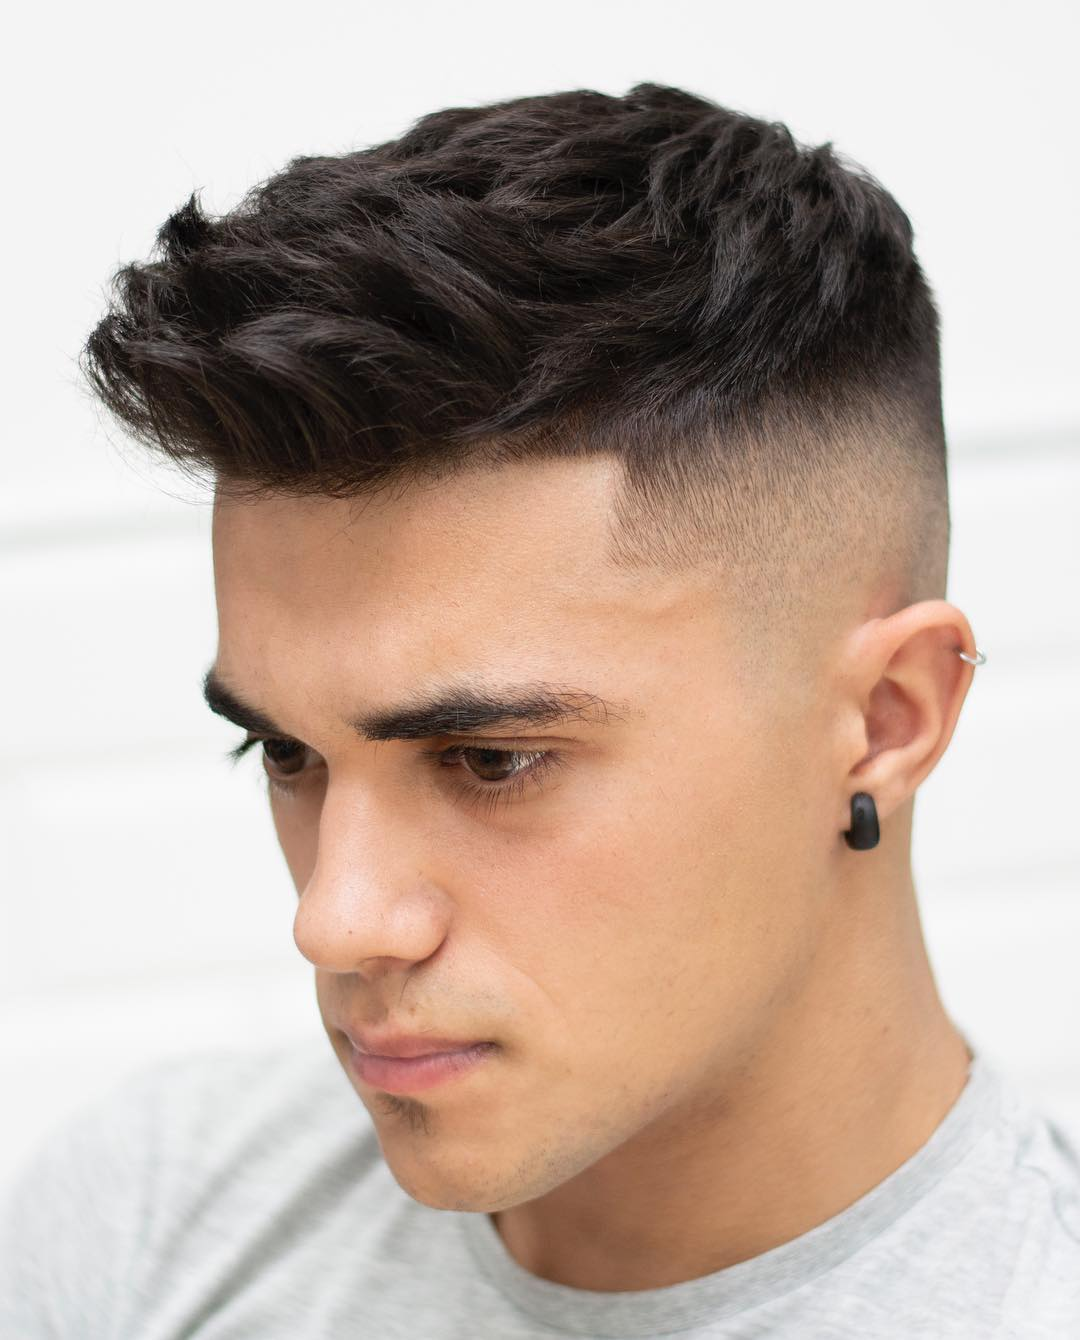 Haircuts for teen boys